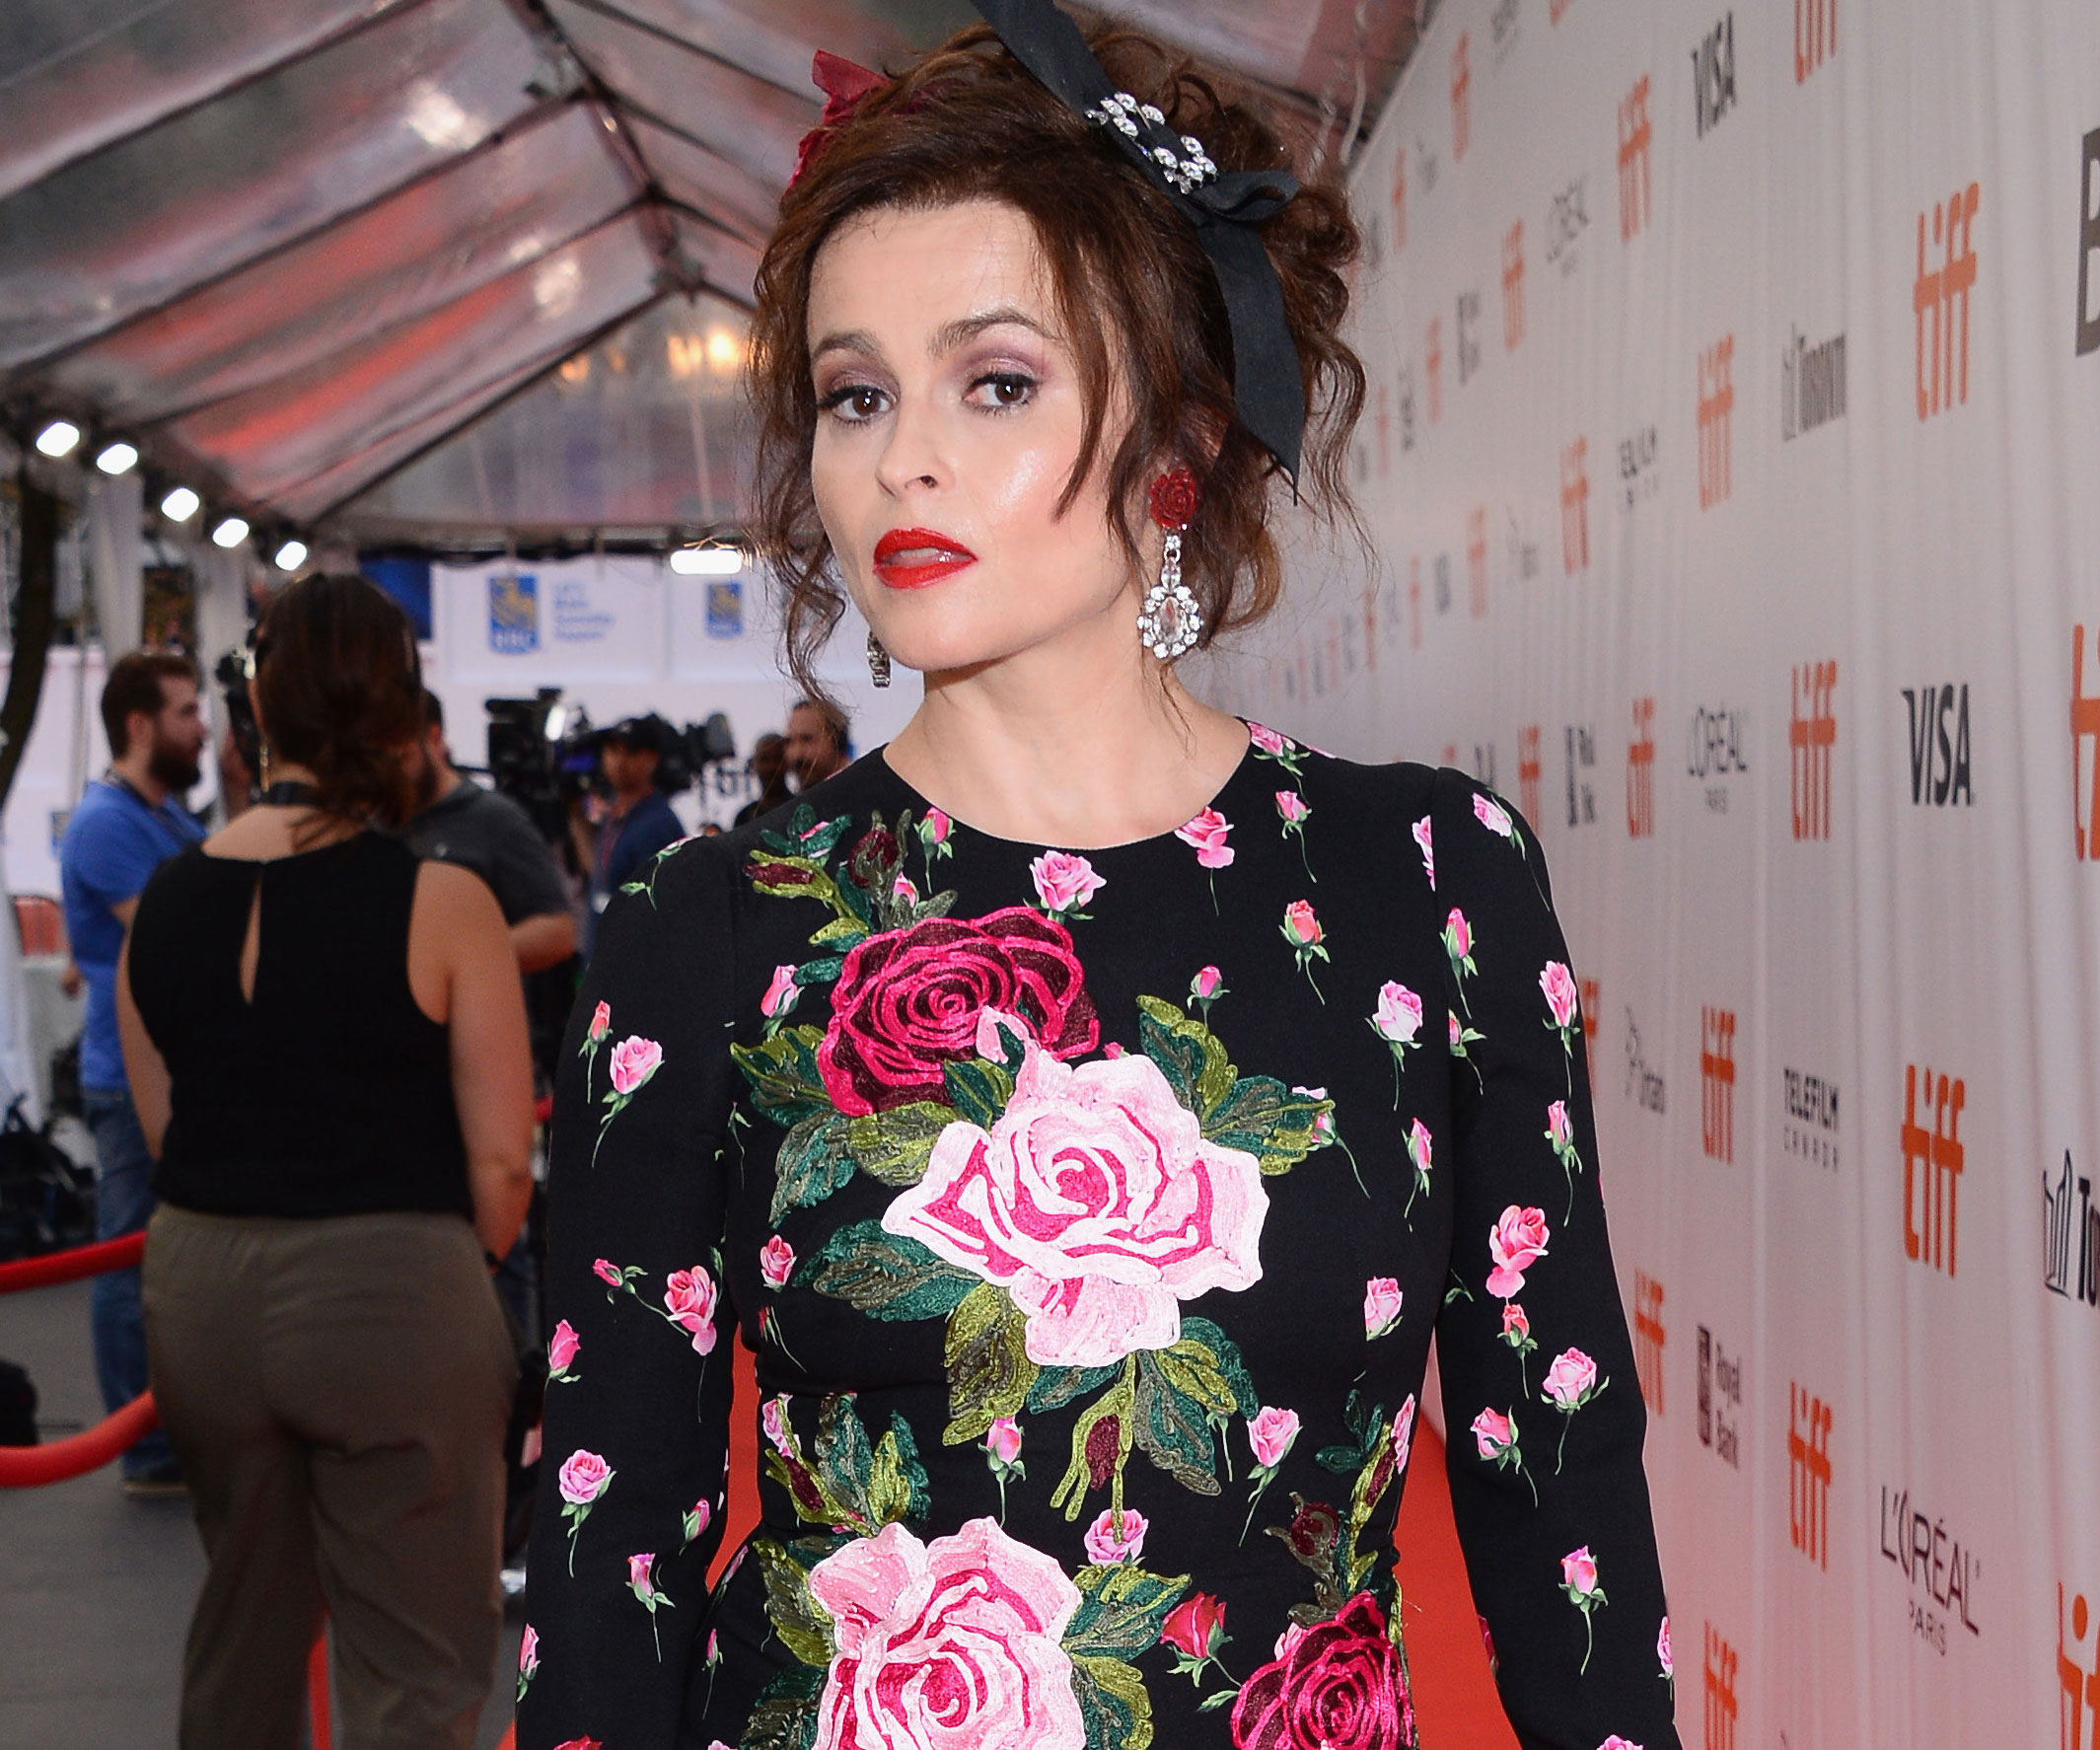 Helena Bonham Carter Joining 'The Crown' as Princess Margaret